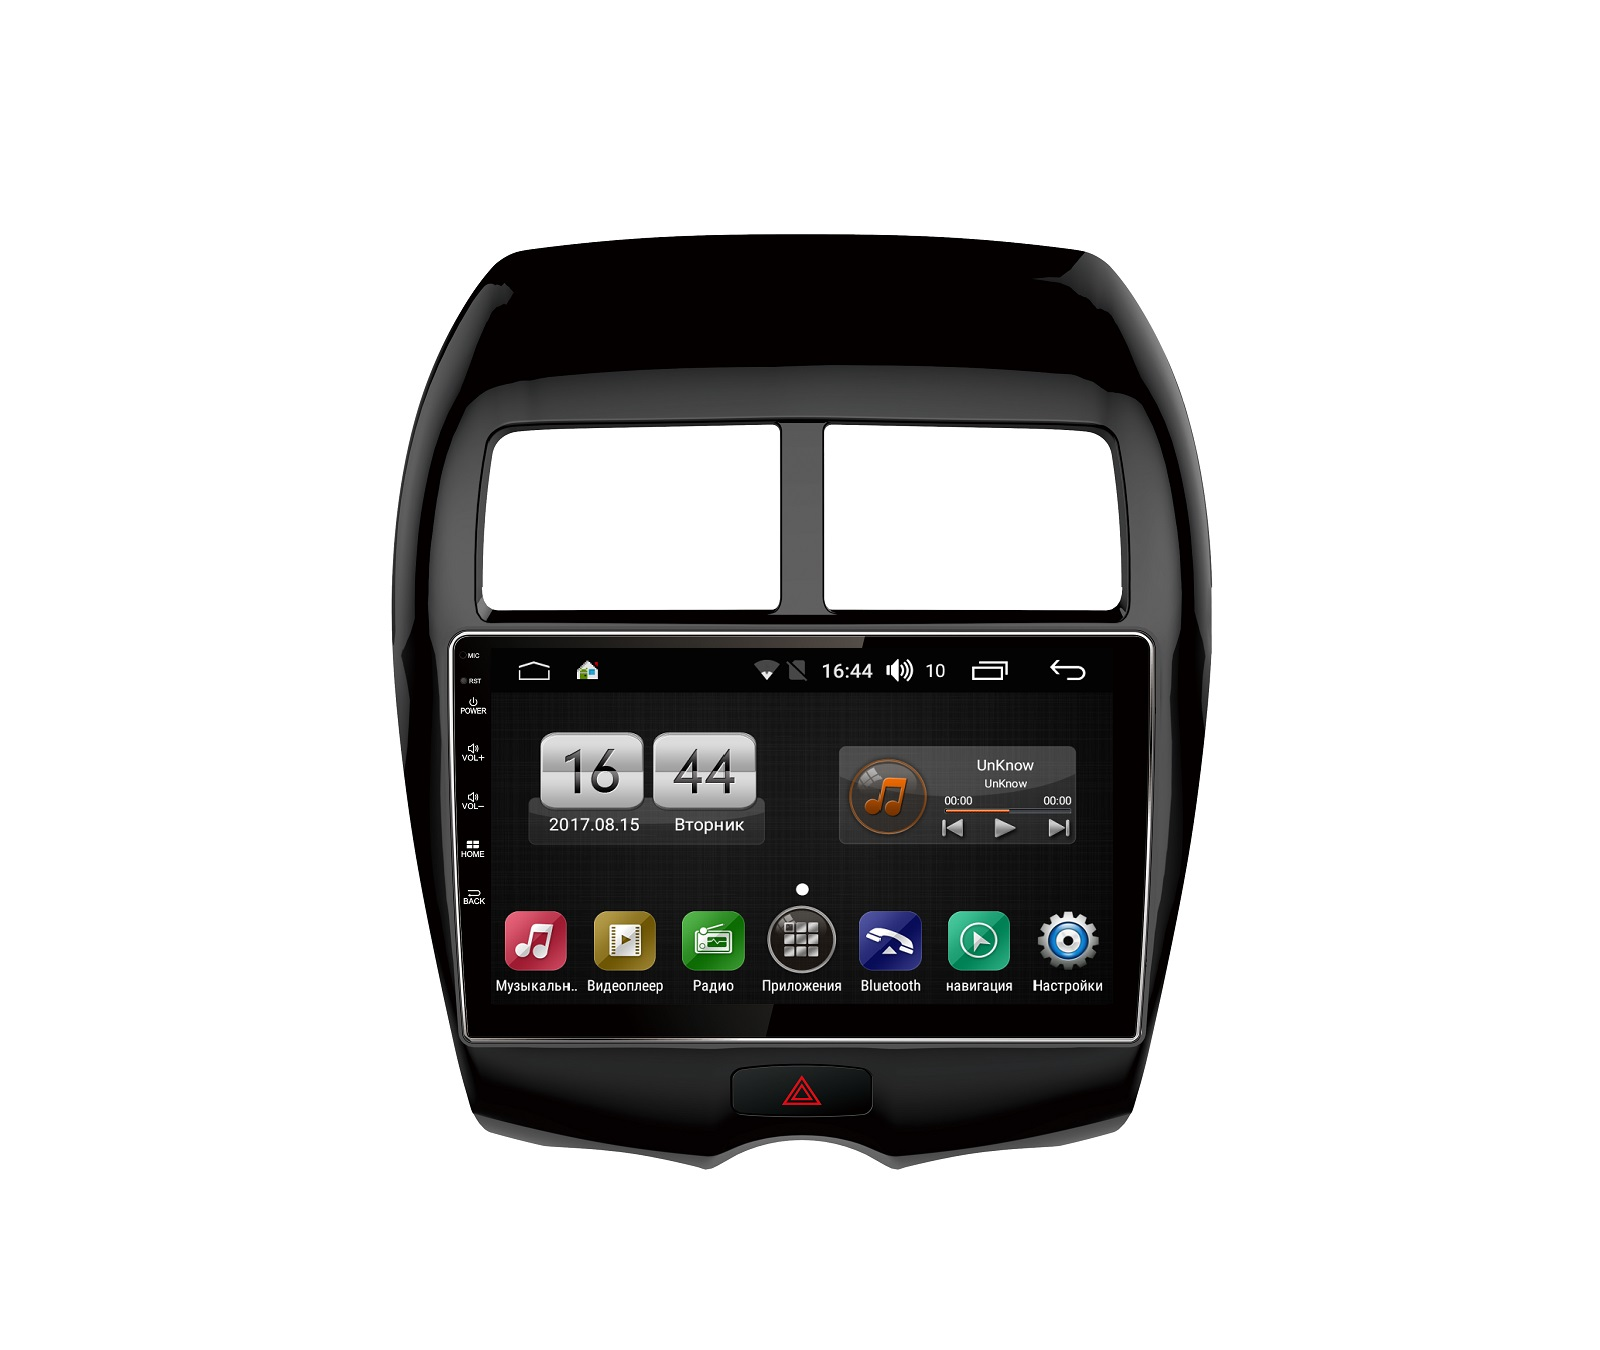 Штатная магнитола FarCar s175 для Mitsubishi Asx, Peugeot 4008, Citroen Aircross на Android (L026R) junsun 7 inch hd car gps navigation with fm bluetooth avin multi languages europe sat nav truck car gps navigator with free maps